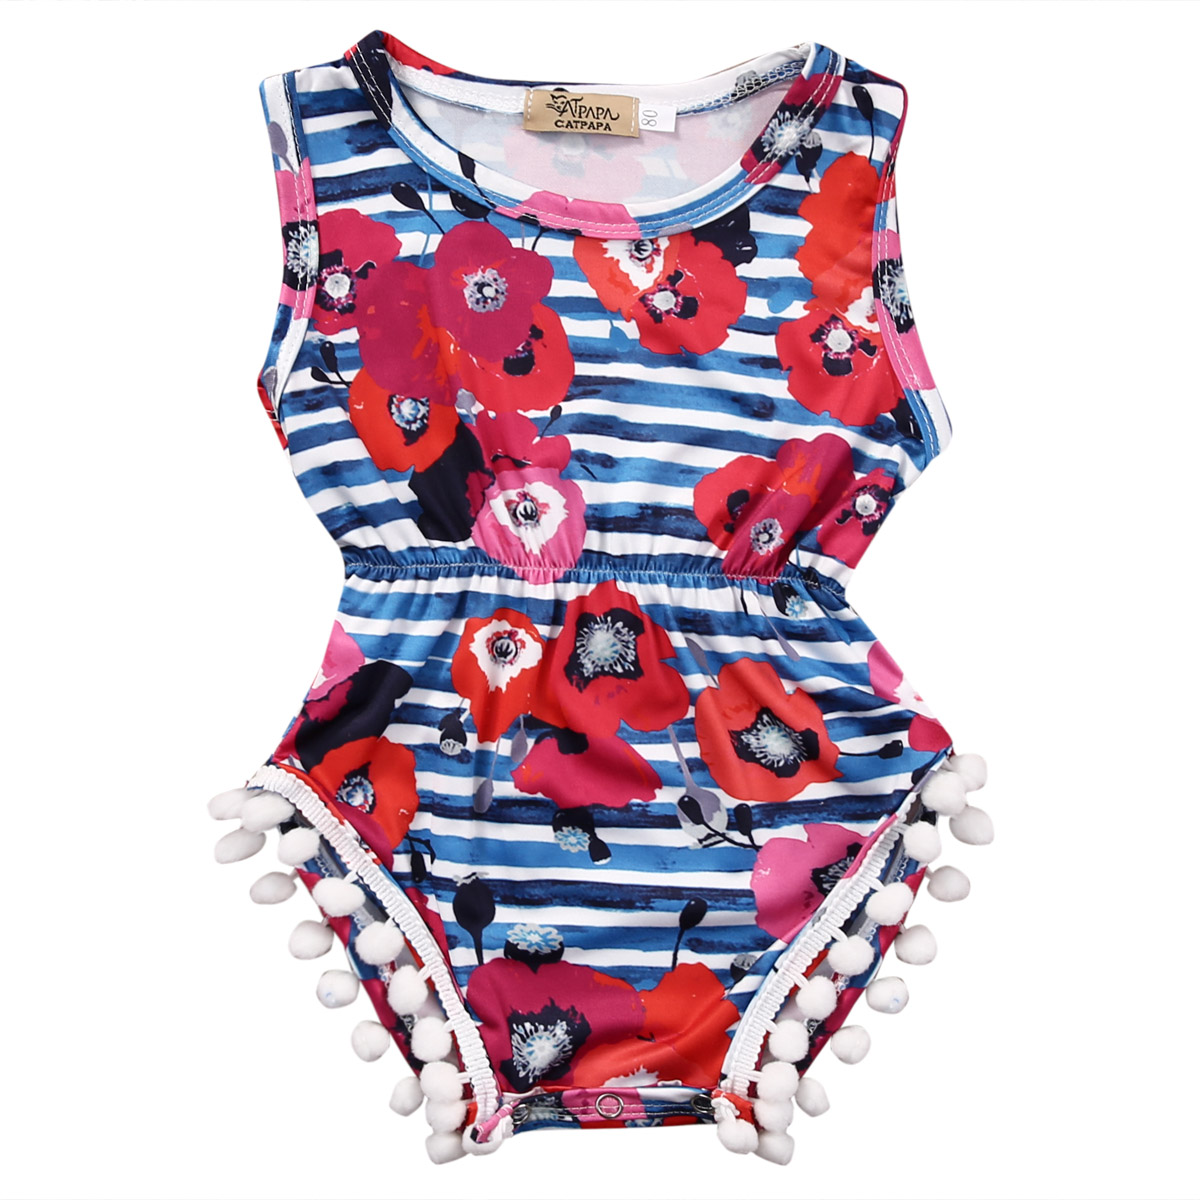 NEW Arrivals Infant Newborn Baby Girl Floral Romper Outfits Summer Clothing